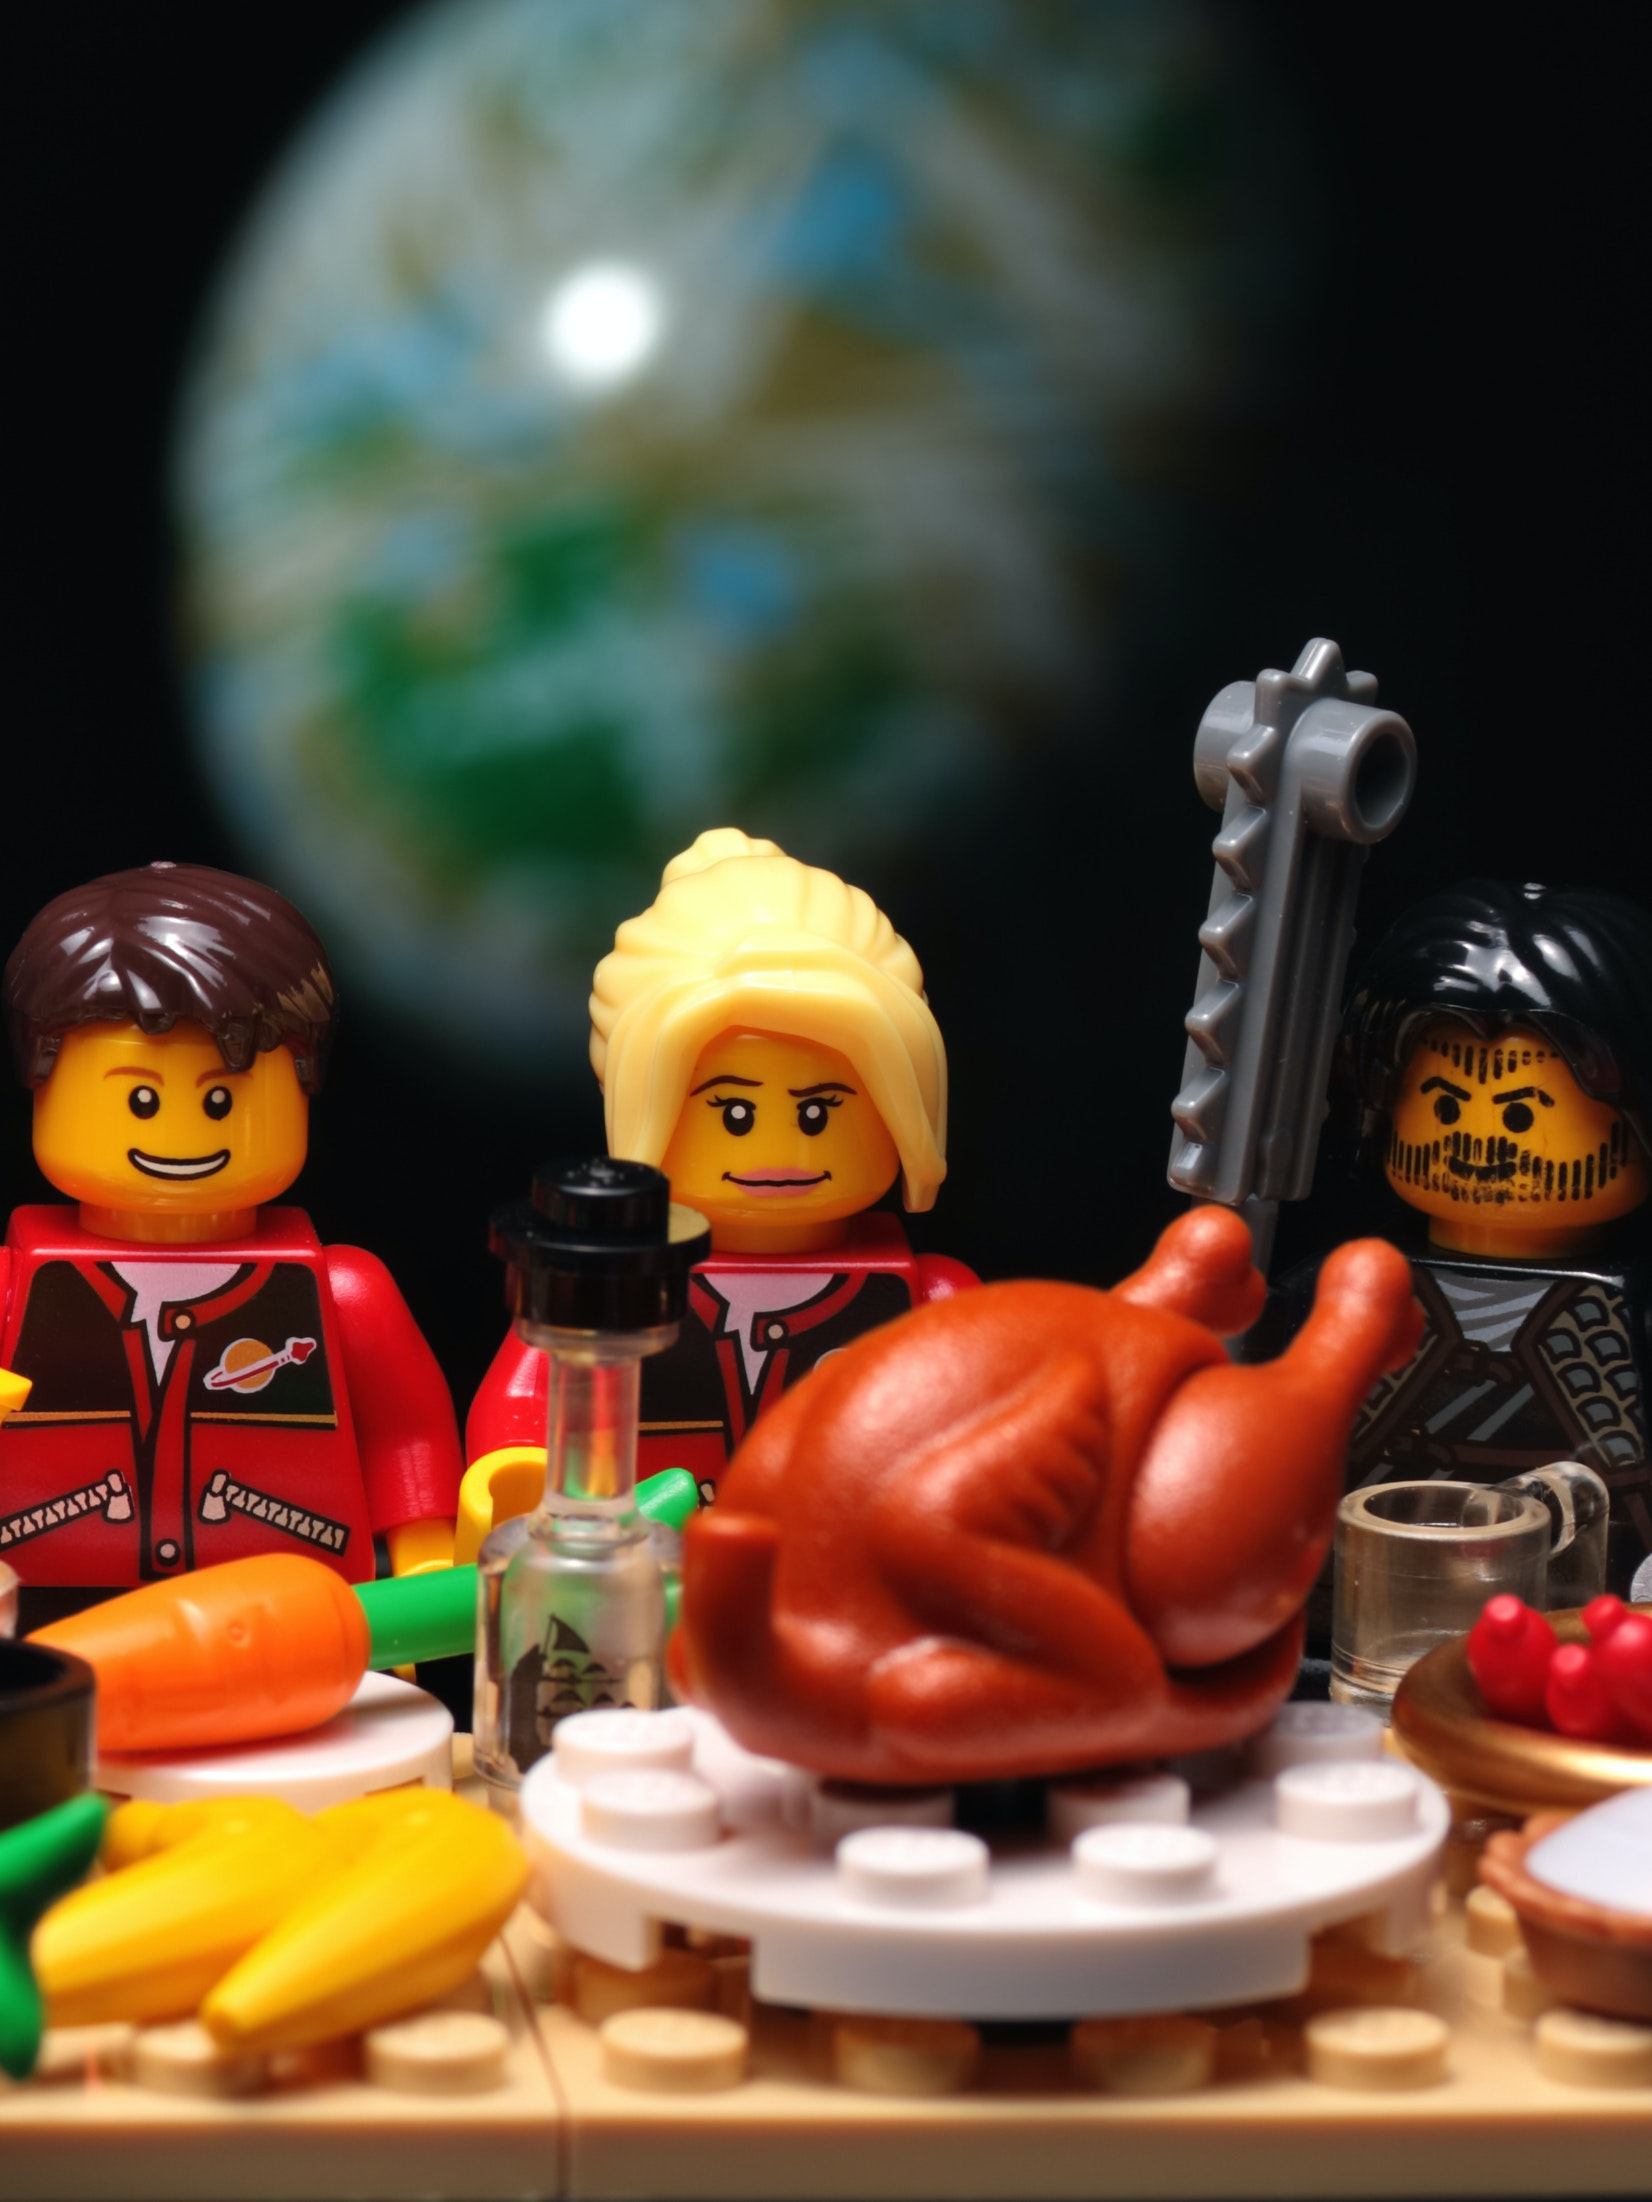 Why Astronauts Eat Irradiated Turkey Covered In Hot Sauce